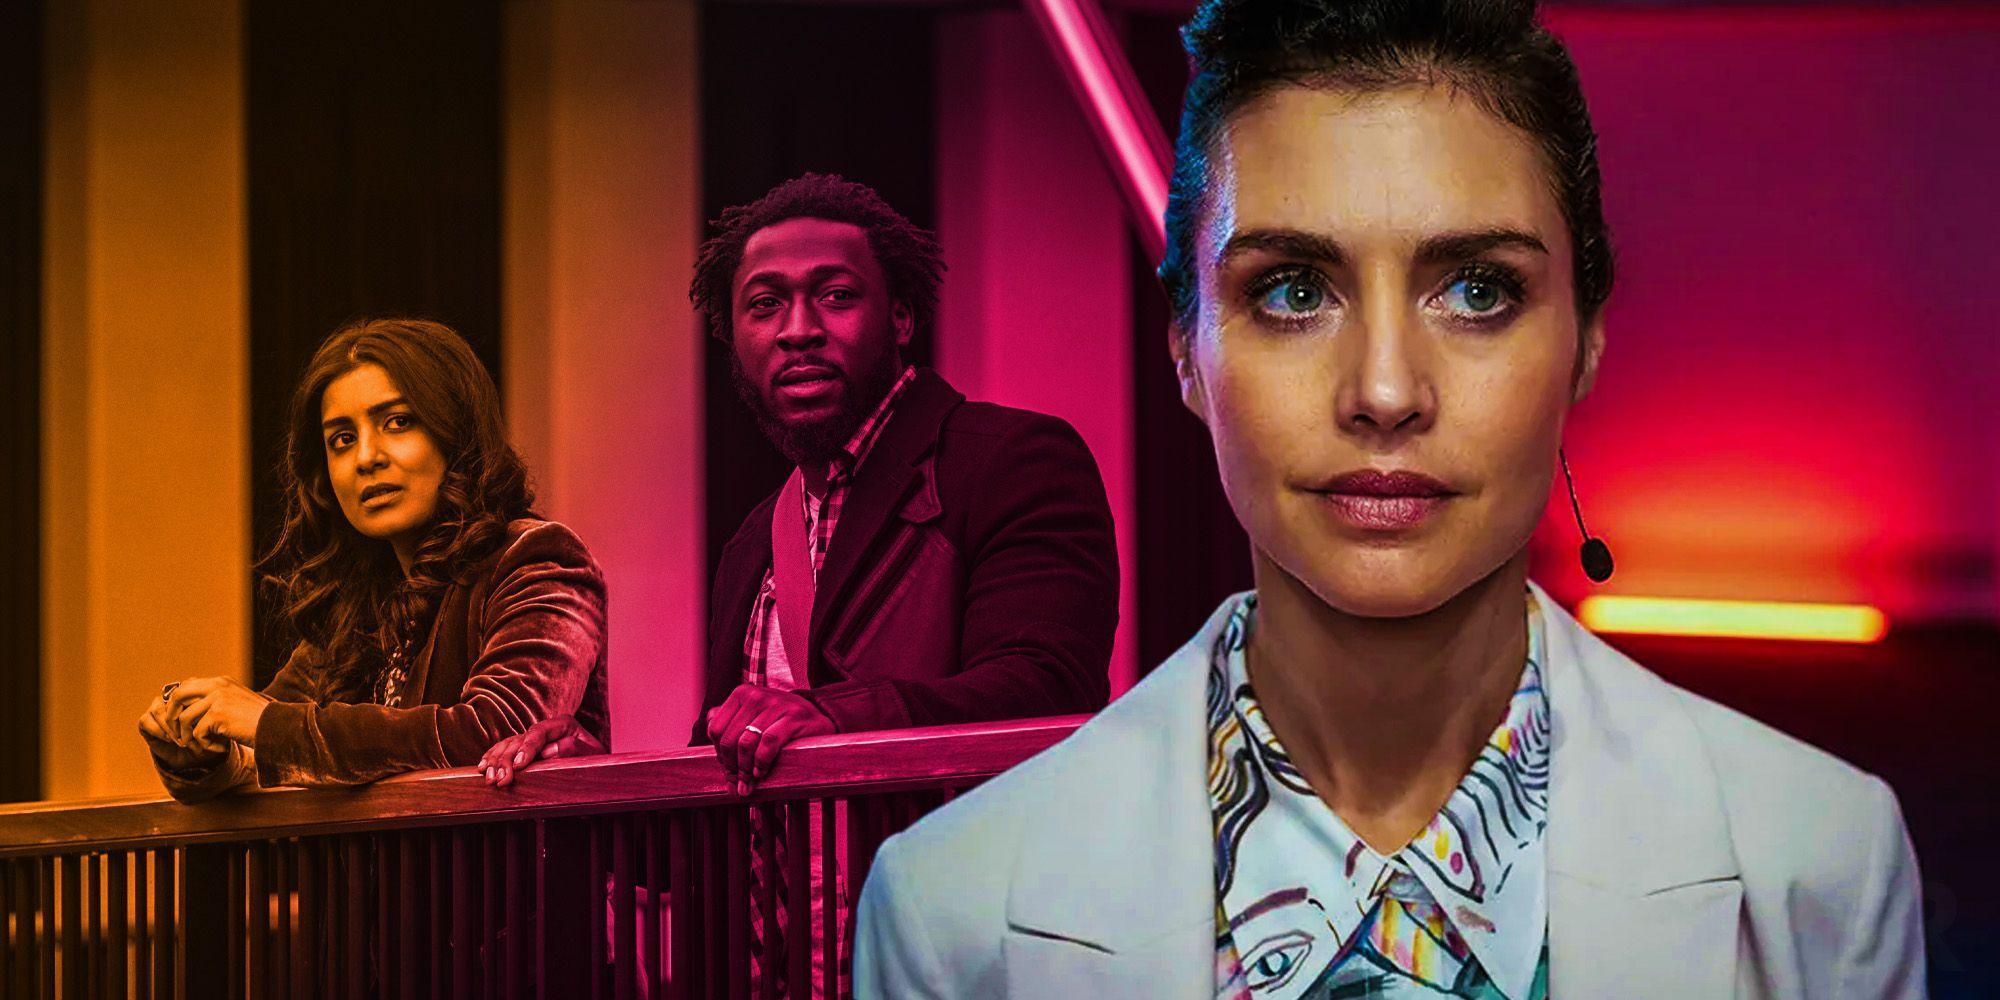 The-One-Season-2-Netflix-Release-Date-And-More